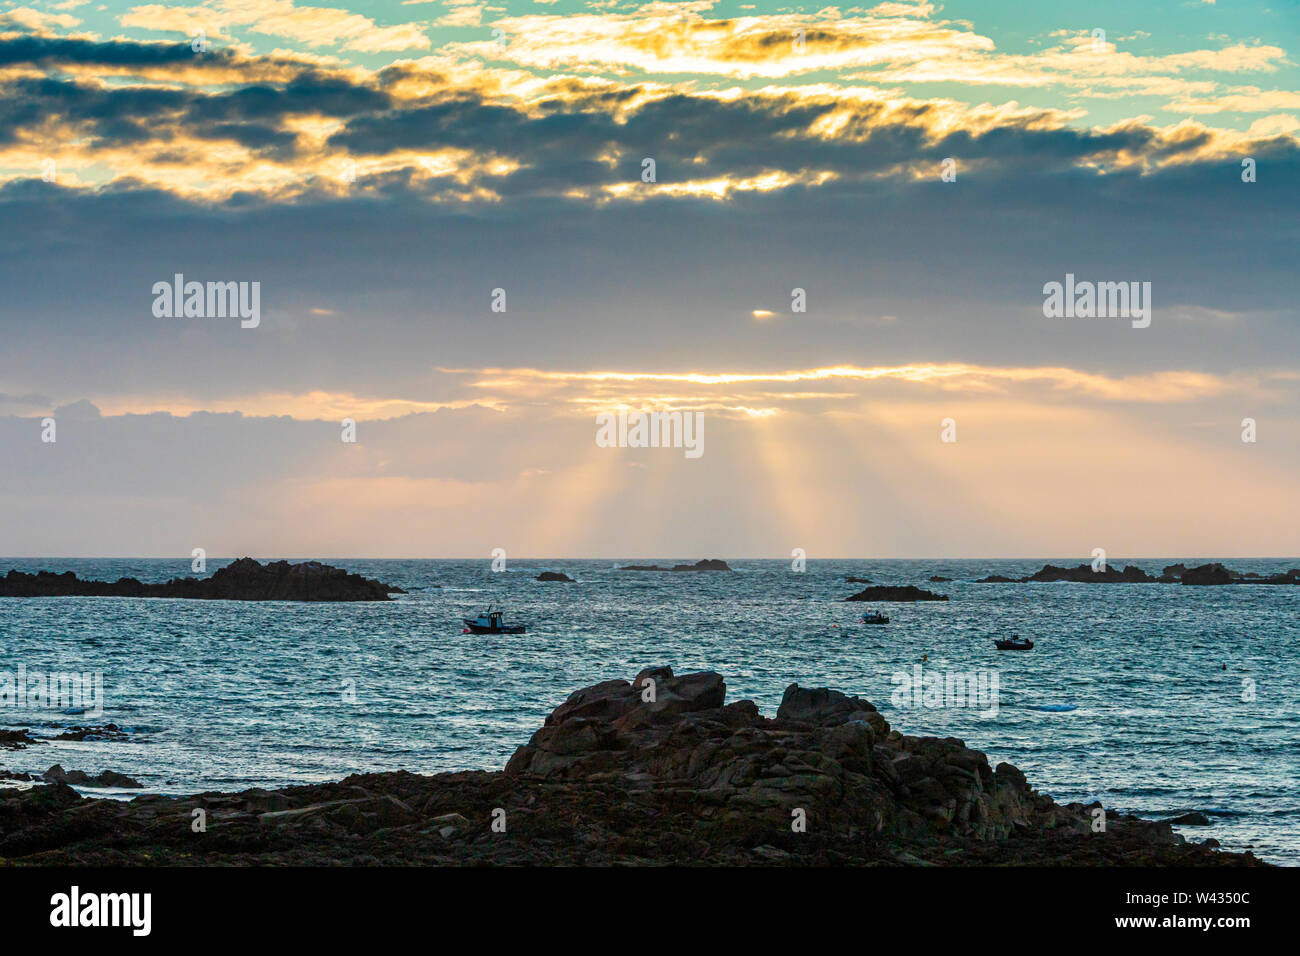 The sun setting over Cobo Bay, Guernsey, Channel Islands UK Stock Photo